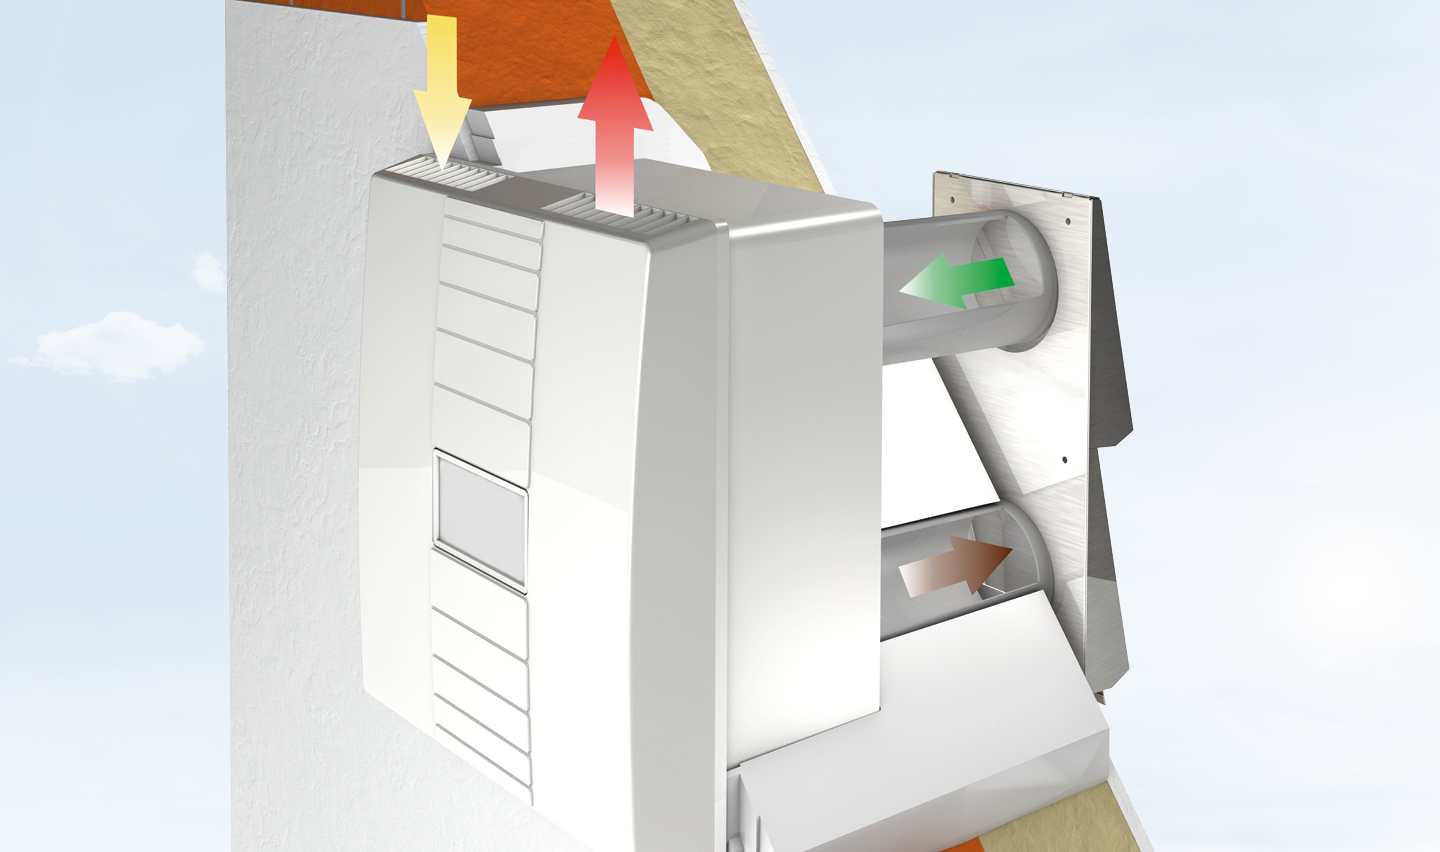 Systec Therm - Funktionsprinzip